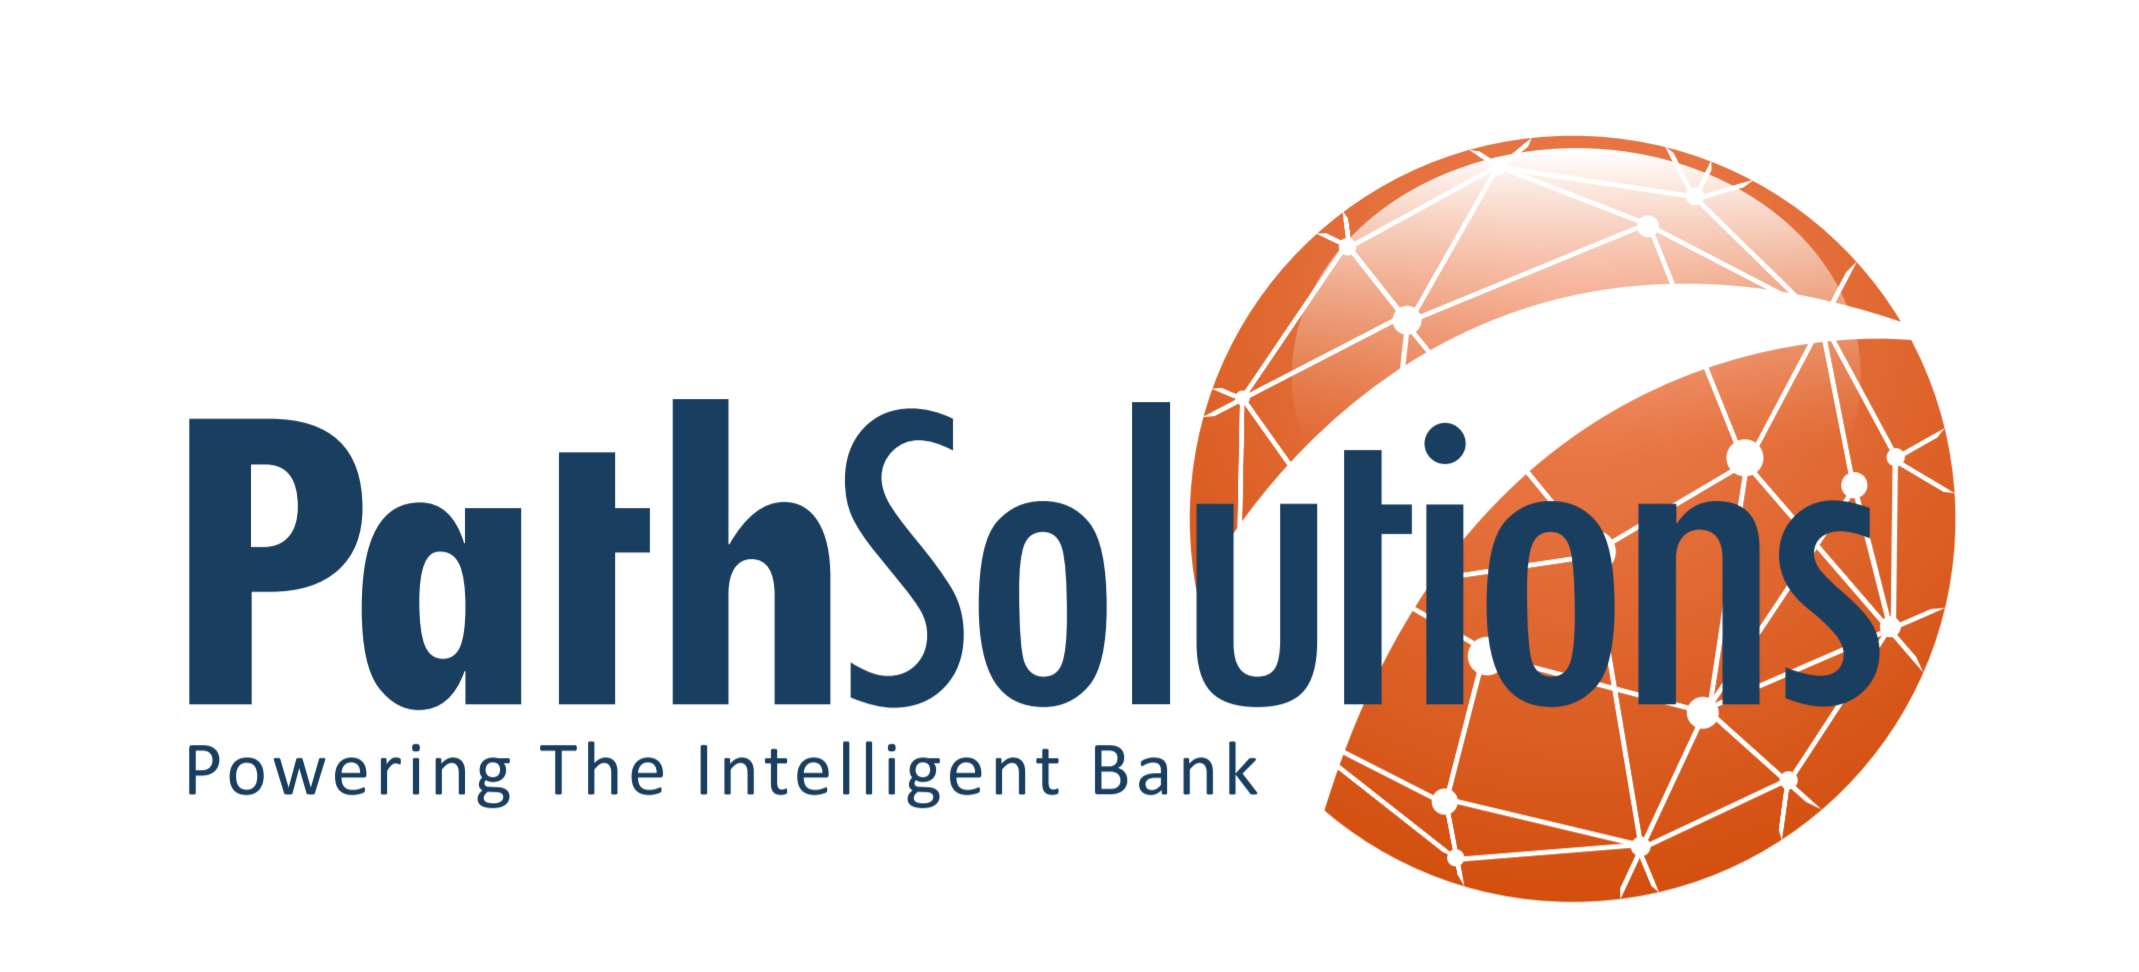 Africa and Gulf Bank selects Path Solutions for strategic Islamic core banking implementation